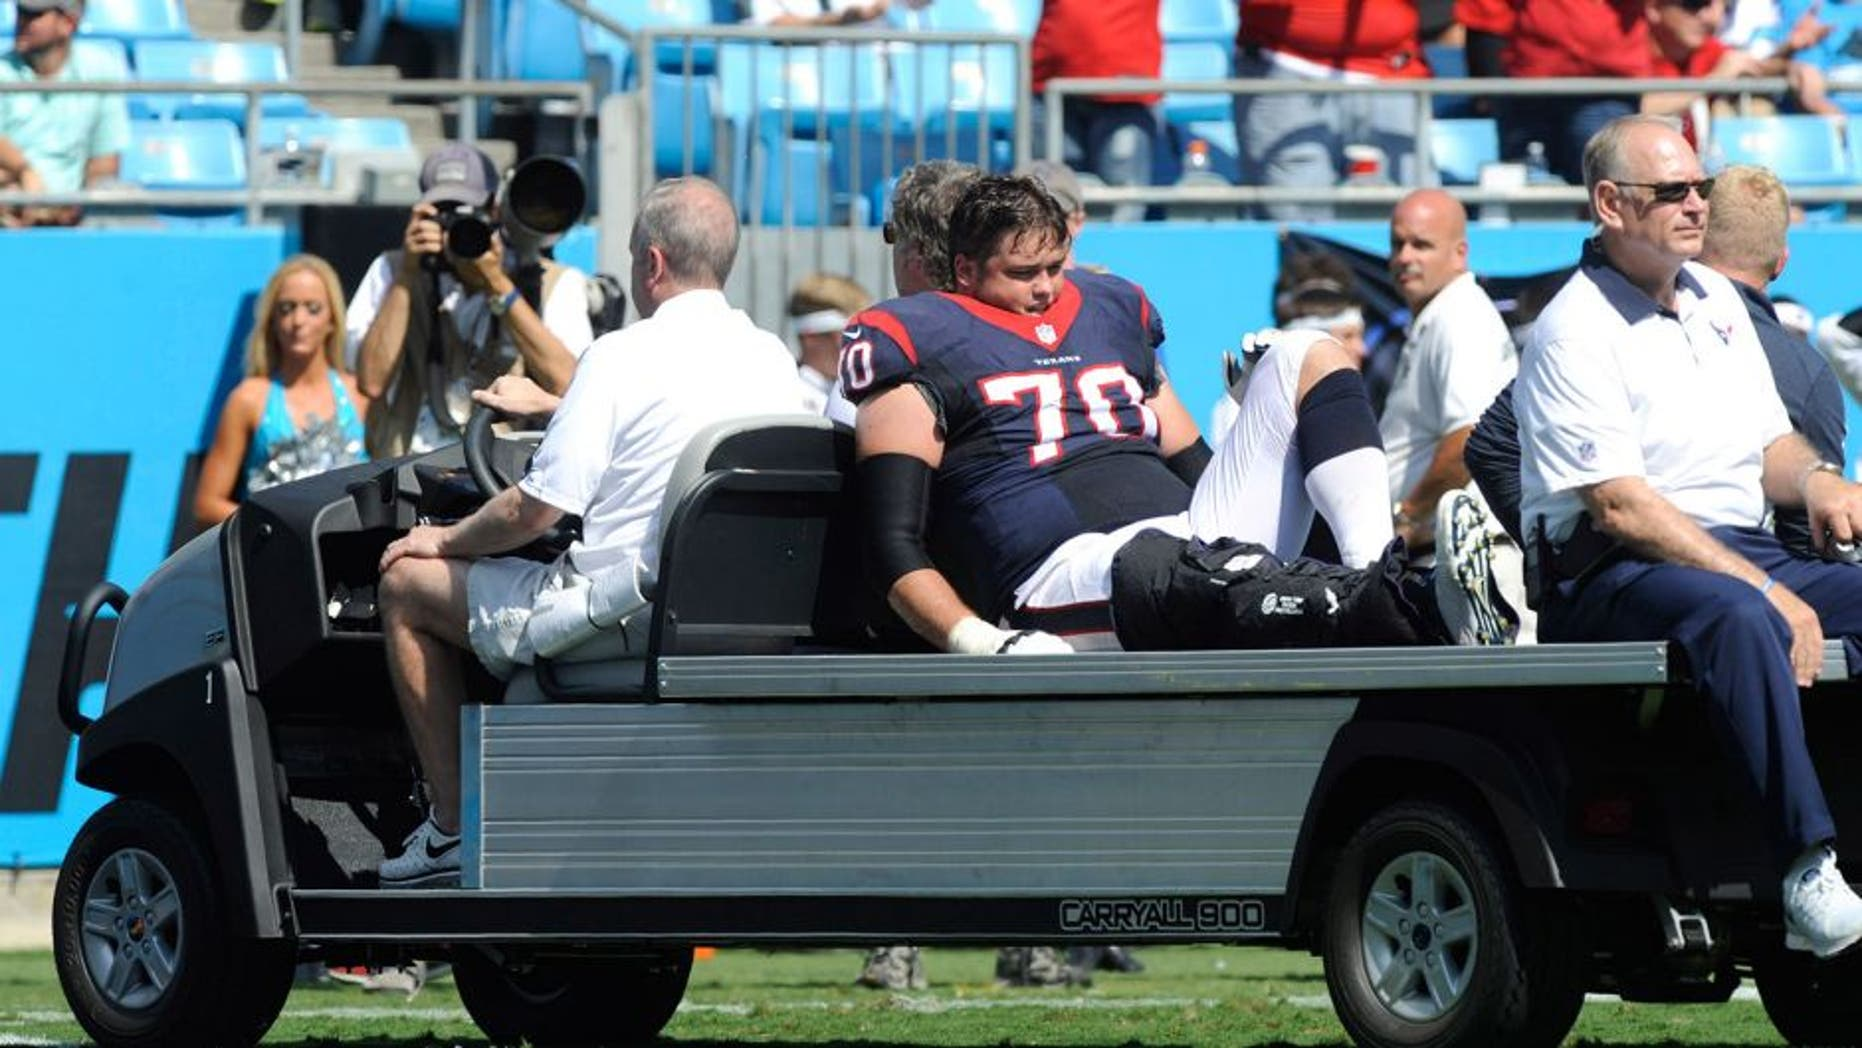 Sep 20, 2015; Charlotte, NC, USA; Houston Texans tackle Jeff Adams (70) is carted off the field after hurting his leg during the first half of the game against the Carolina Panthers at Bank of America Stadium. Mandatory Credit: Sam Sharpe-USA TODAY Sports